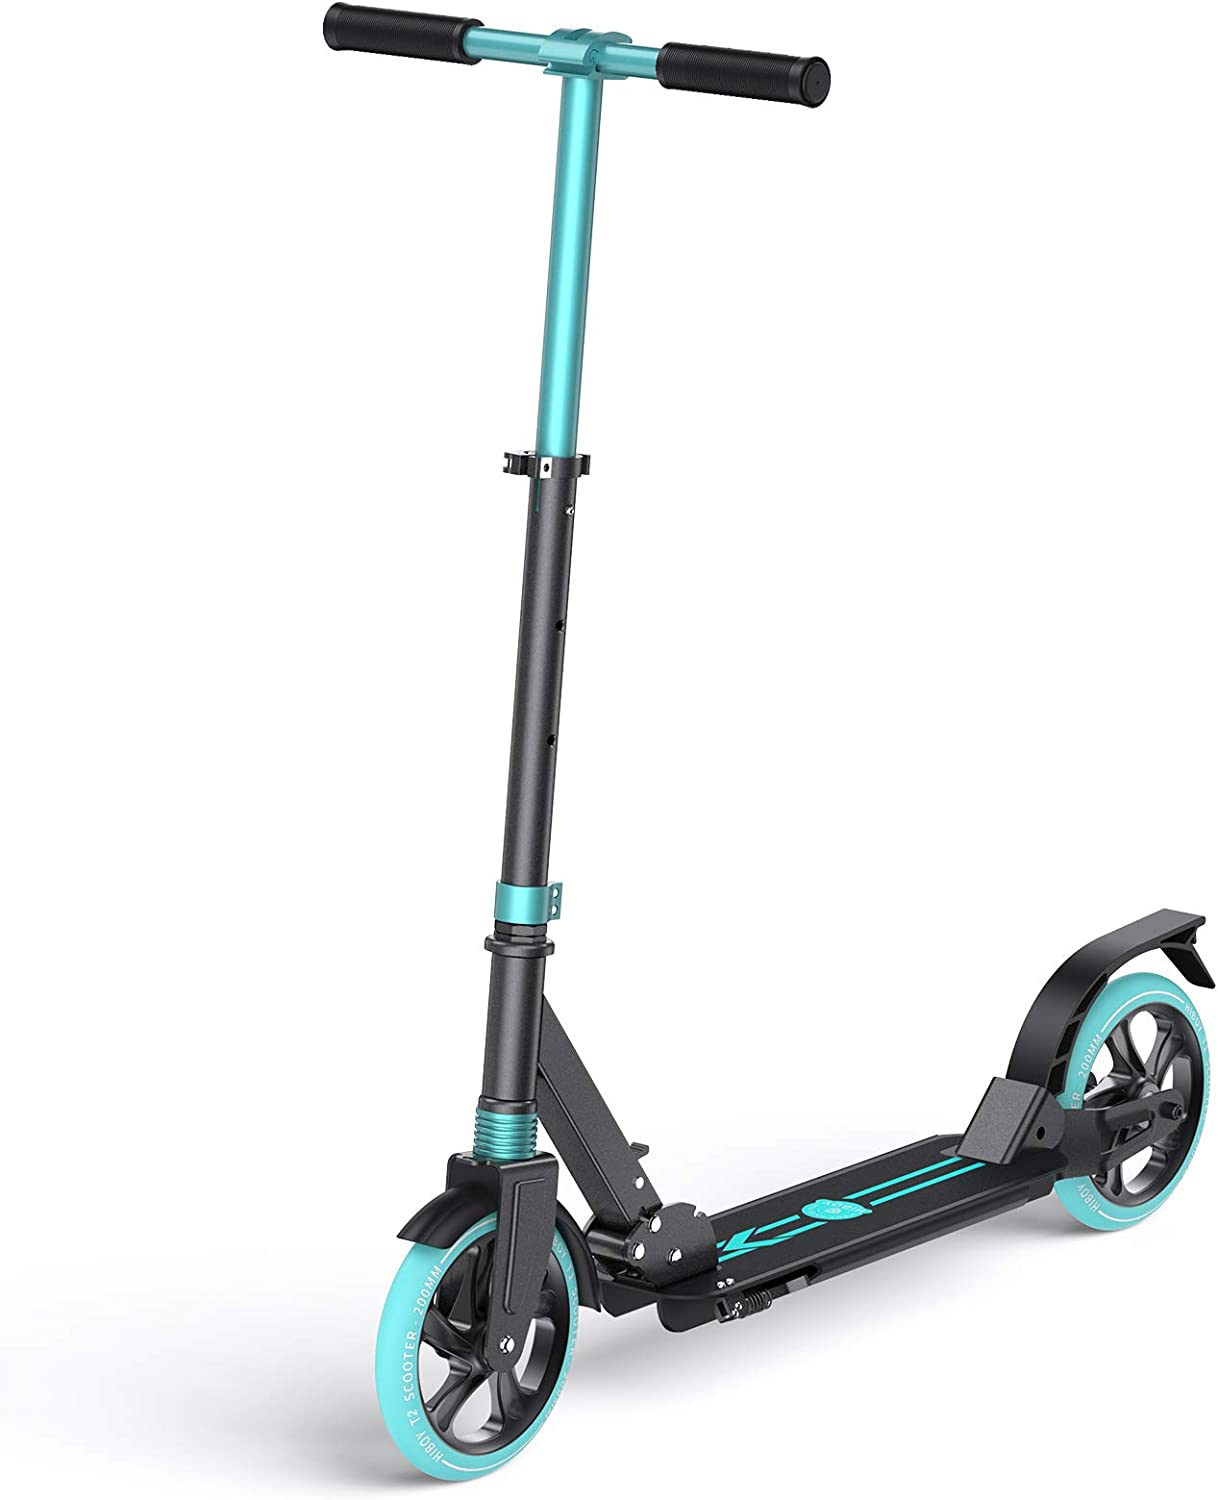 Hiboy Scooter for Adults, Kids, Teens